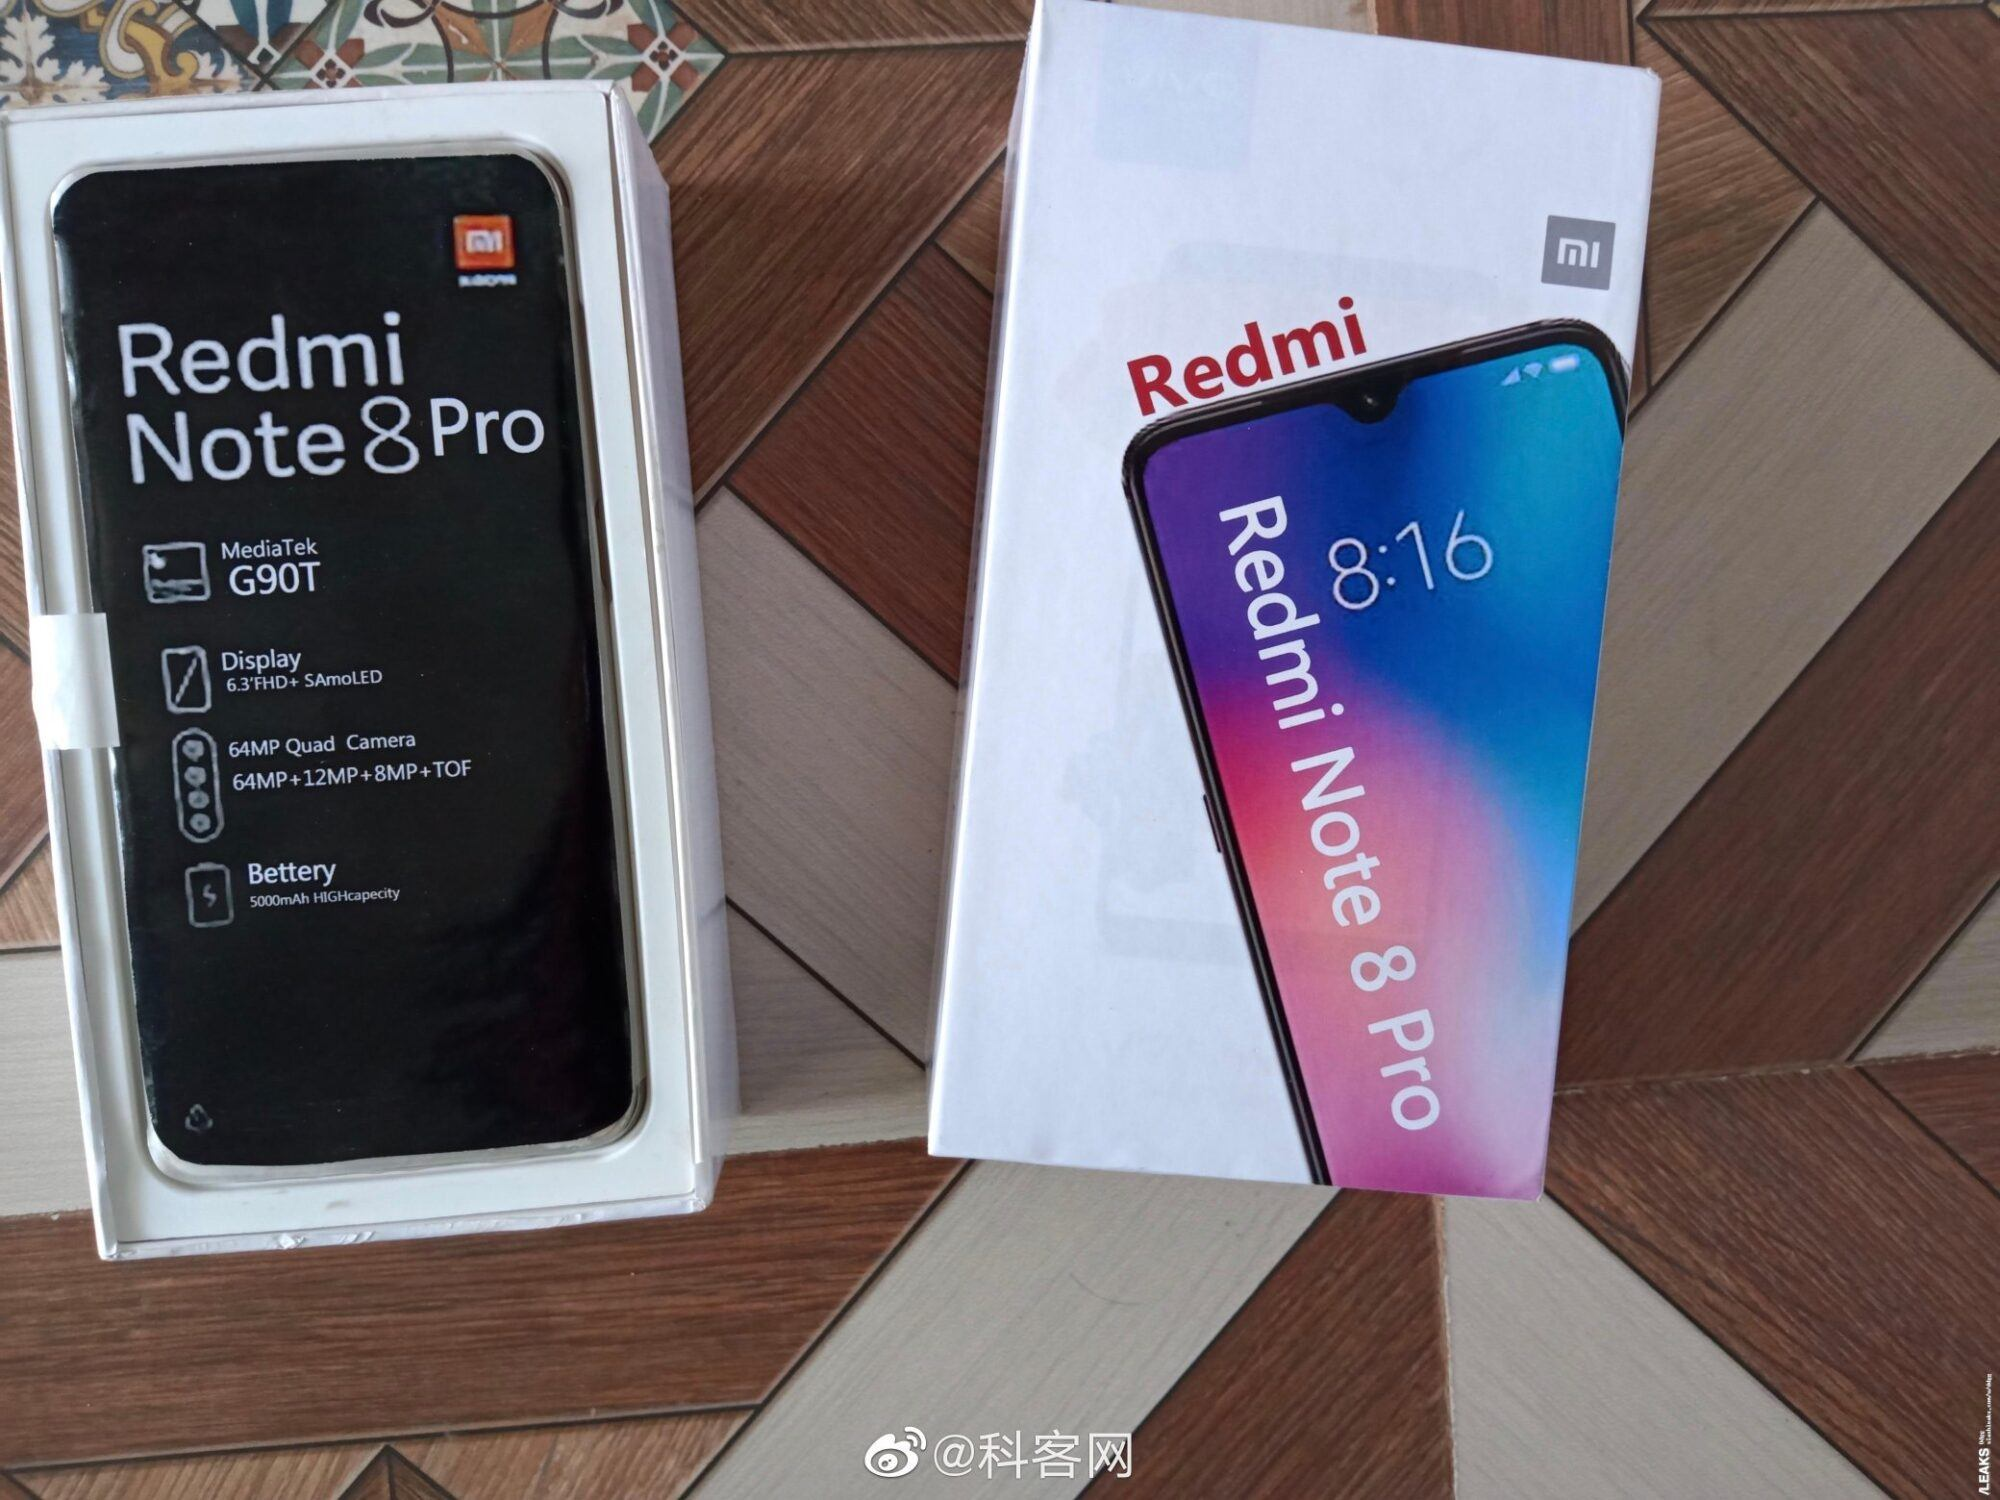 Déballage du redmi note 8.